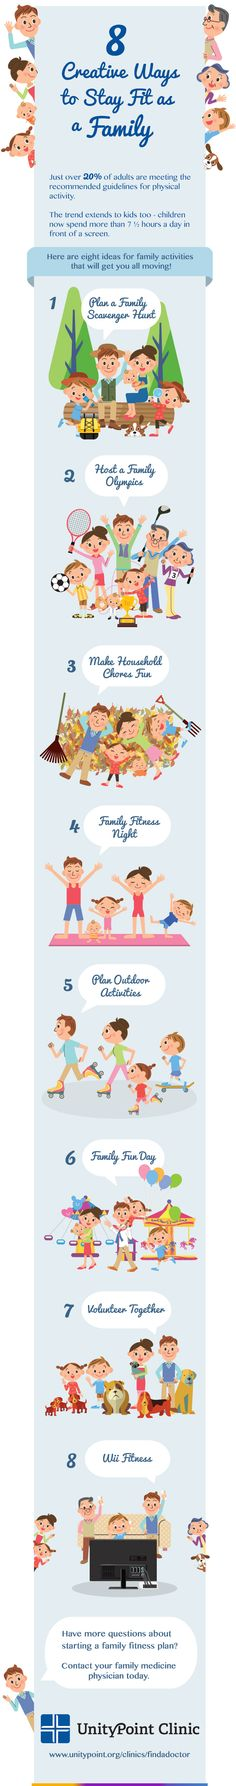 tips to stay health as a family infographic